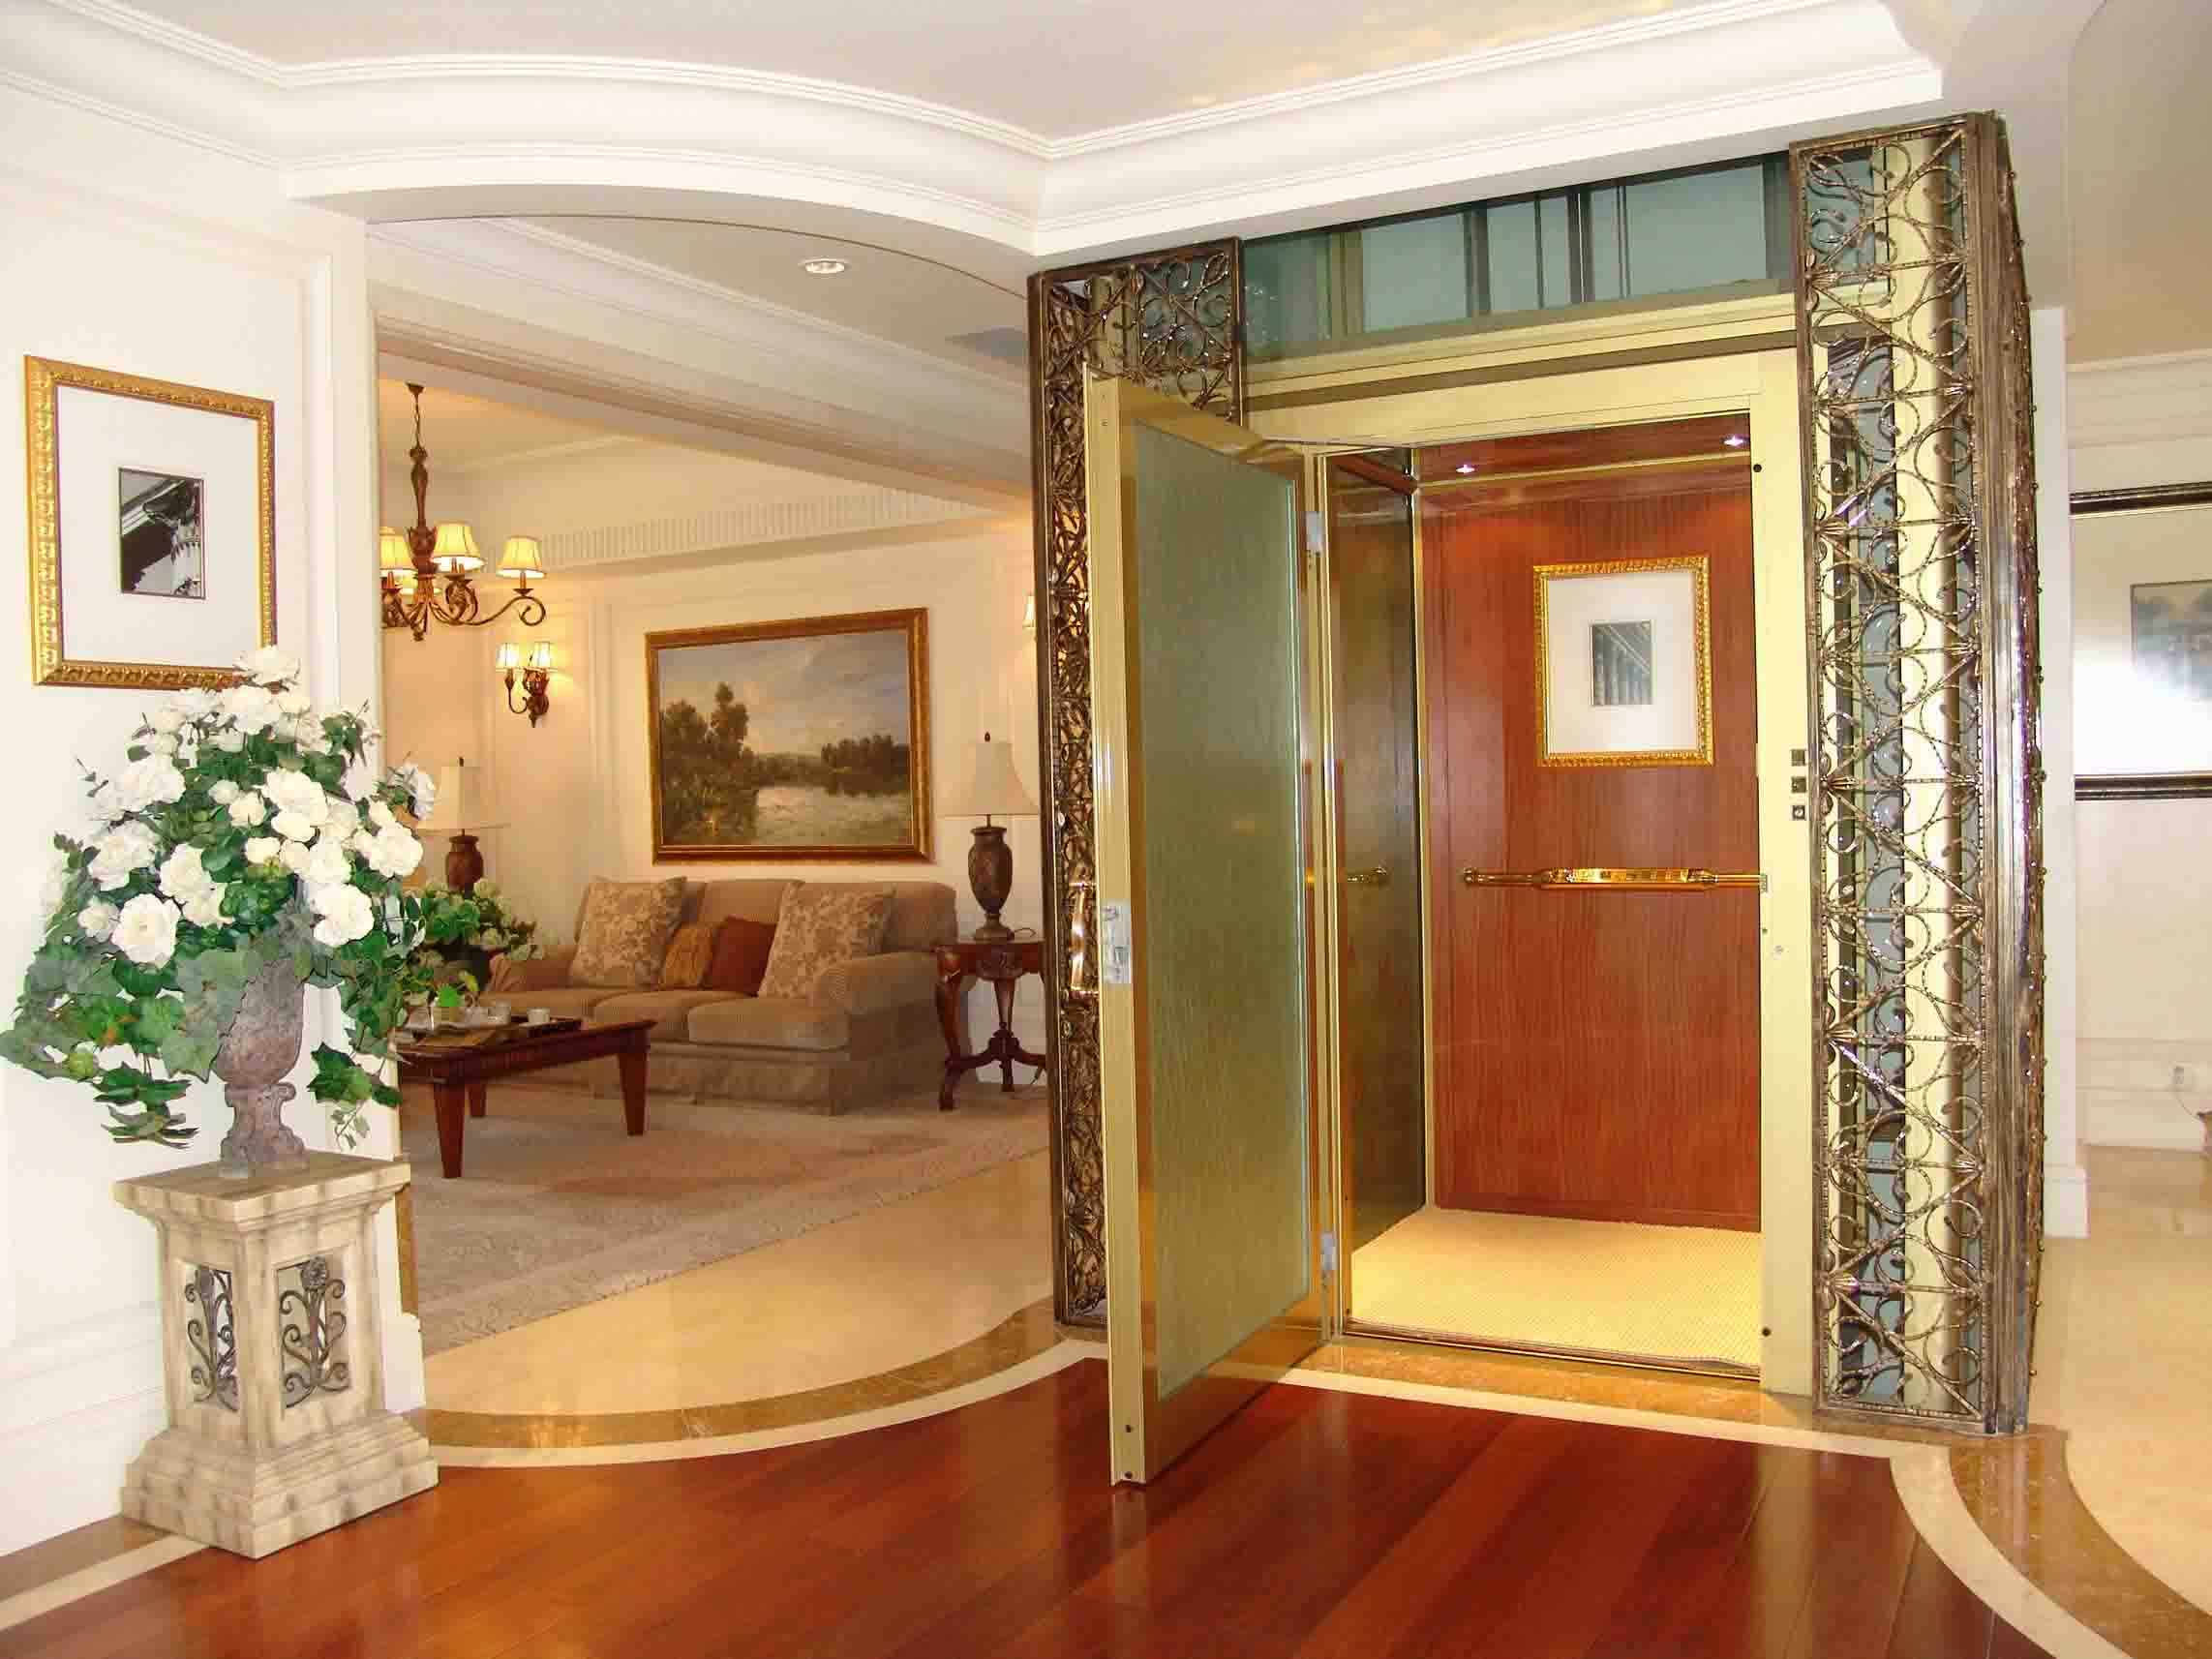 Small villa lift for home use with best price from delfar for Small lifts for houses